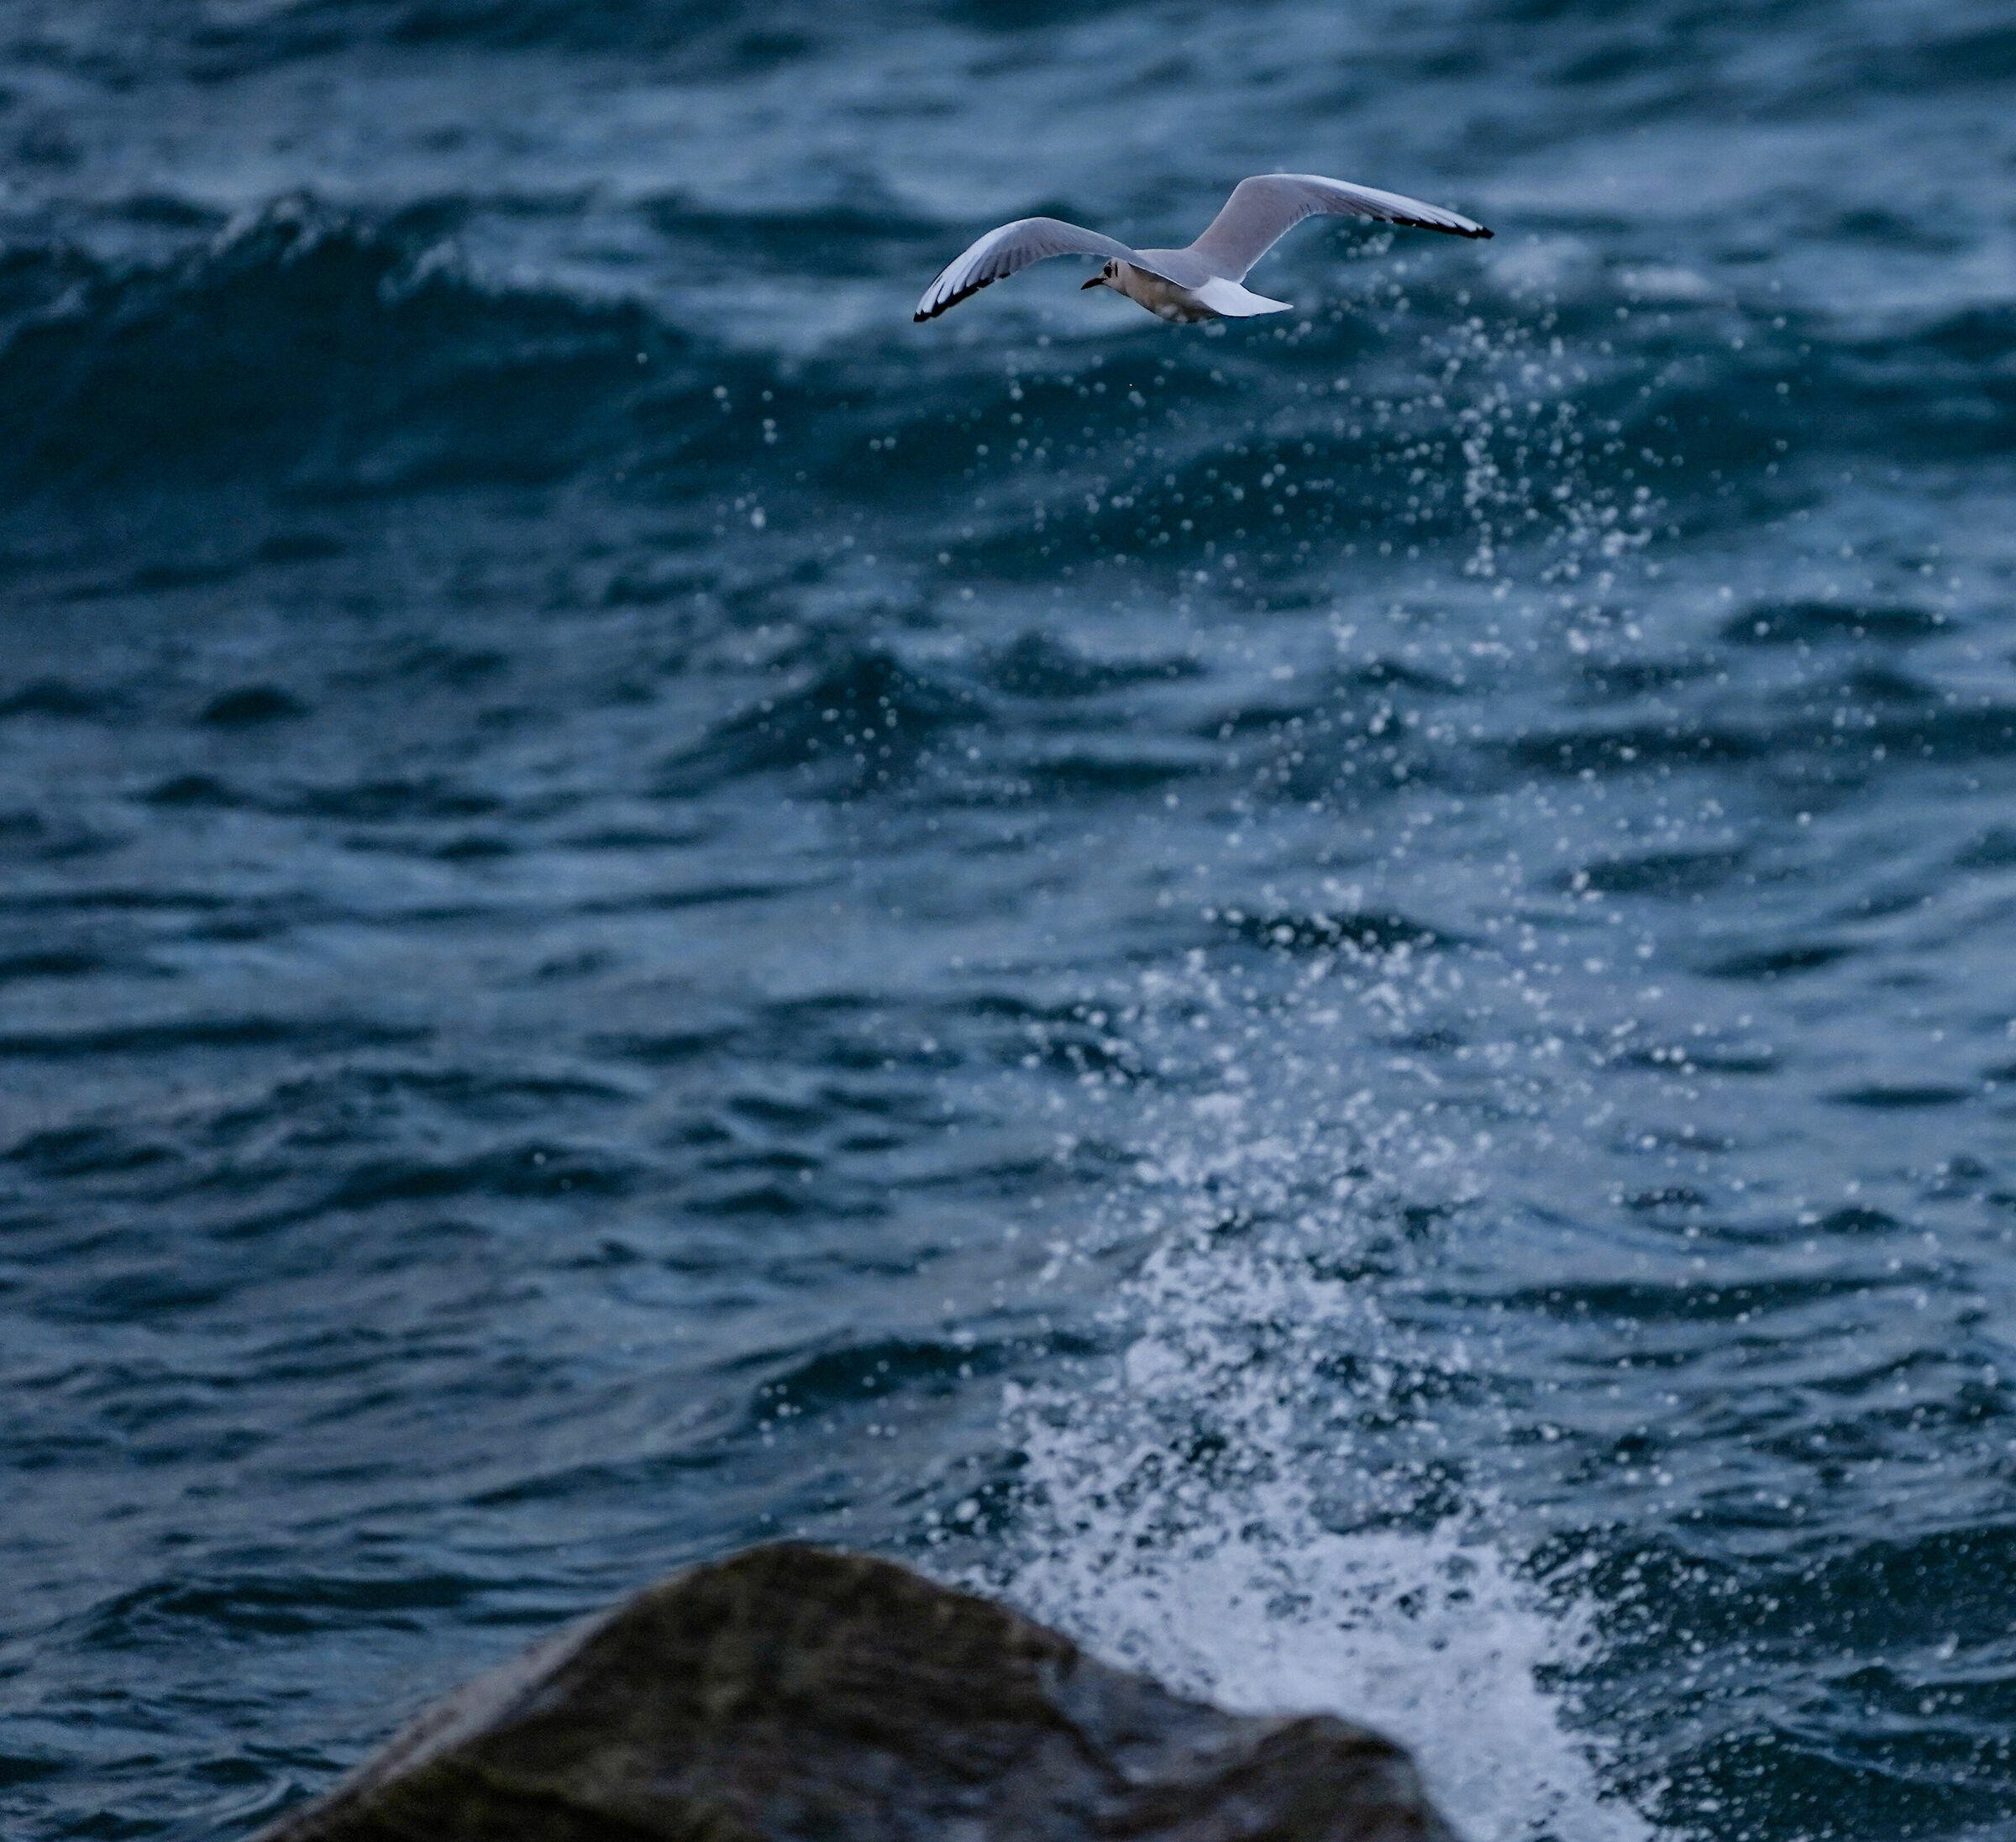 Flight over the wave...